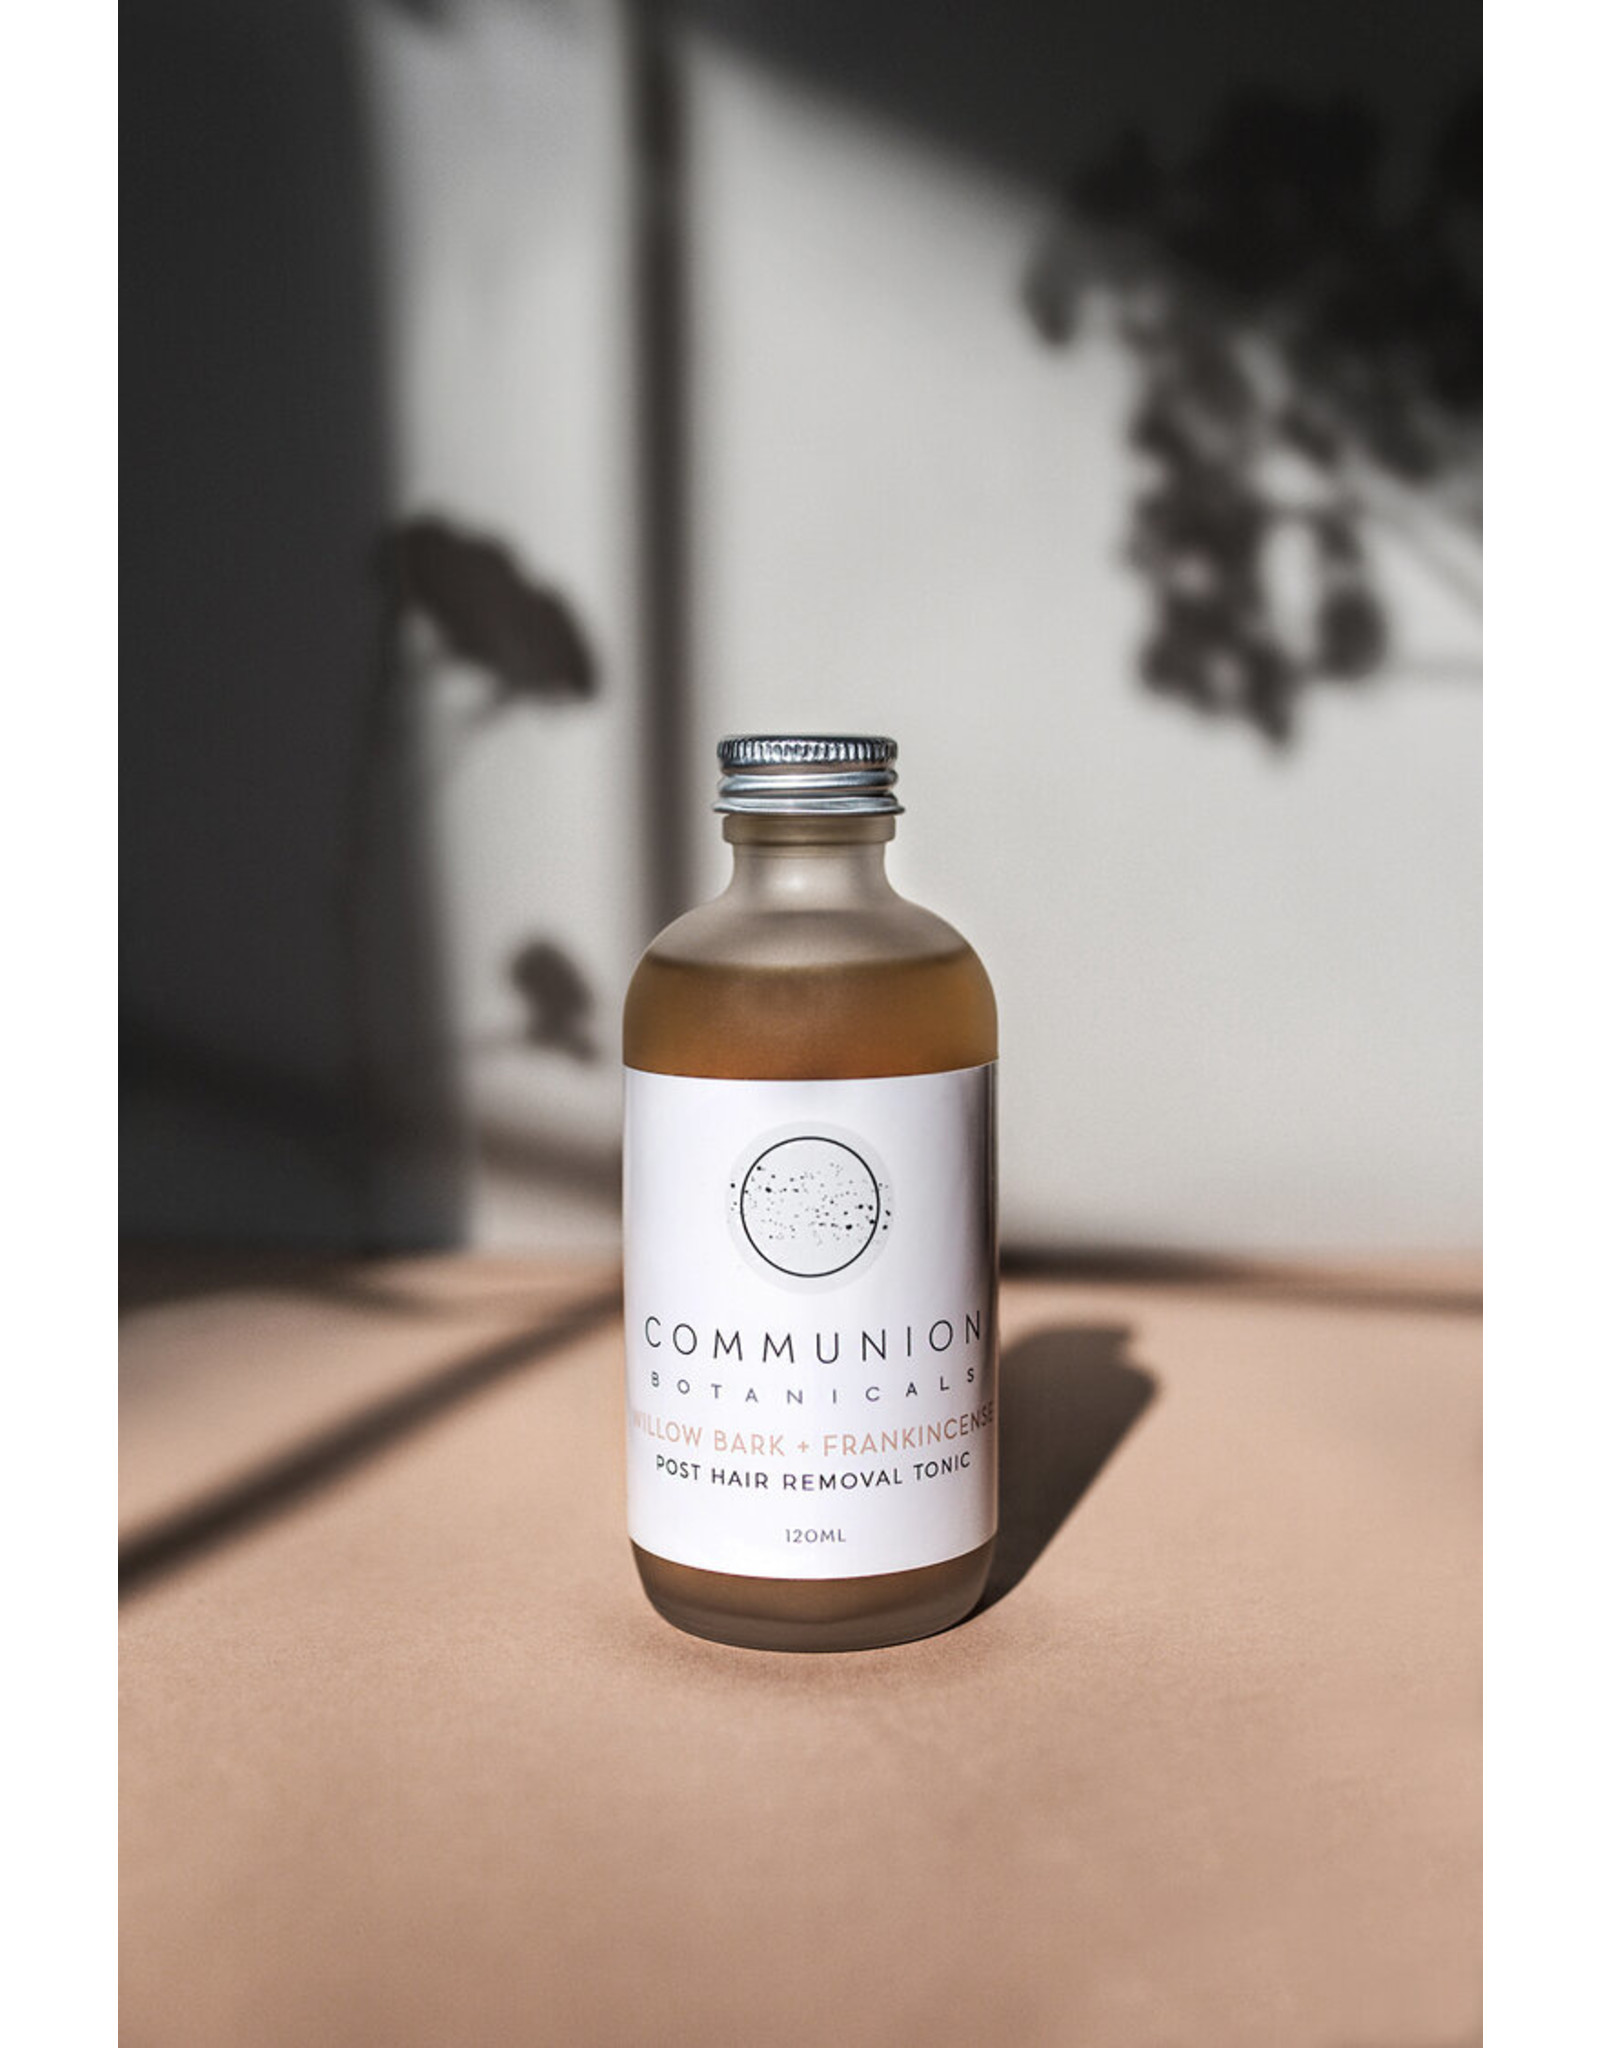 Communion Botanicals Post Hair Removal Tonic